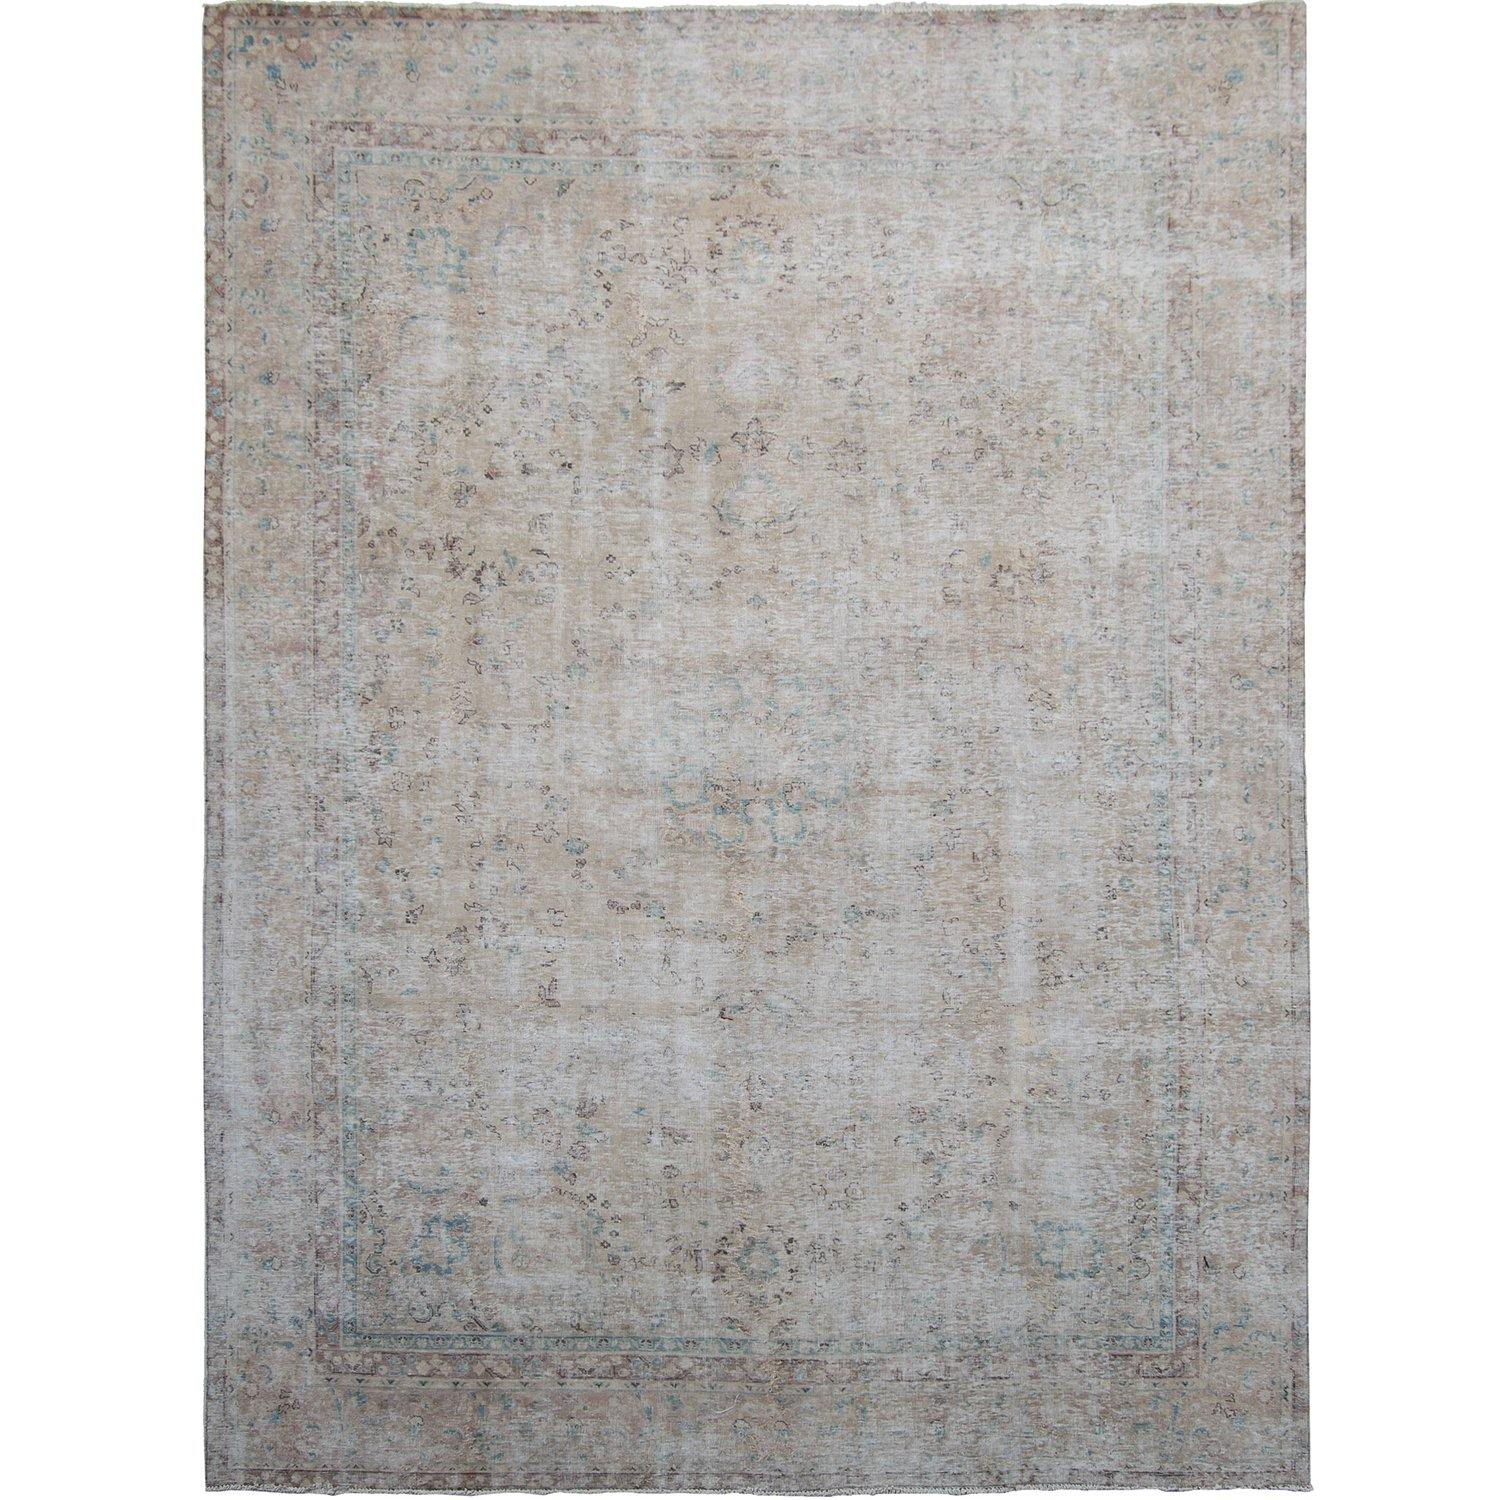 Vintage Persian Hand-knotted Rug 272cm x 362cm Persian-Rug | House-of-Haghi | NewMarket | Auckland | NZ | Handmade Persian Rugs | Hand Knotted Persian Rugs